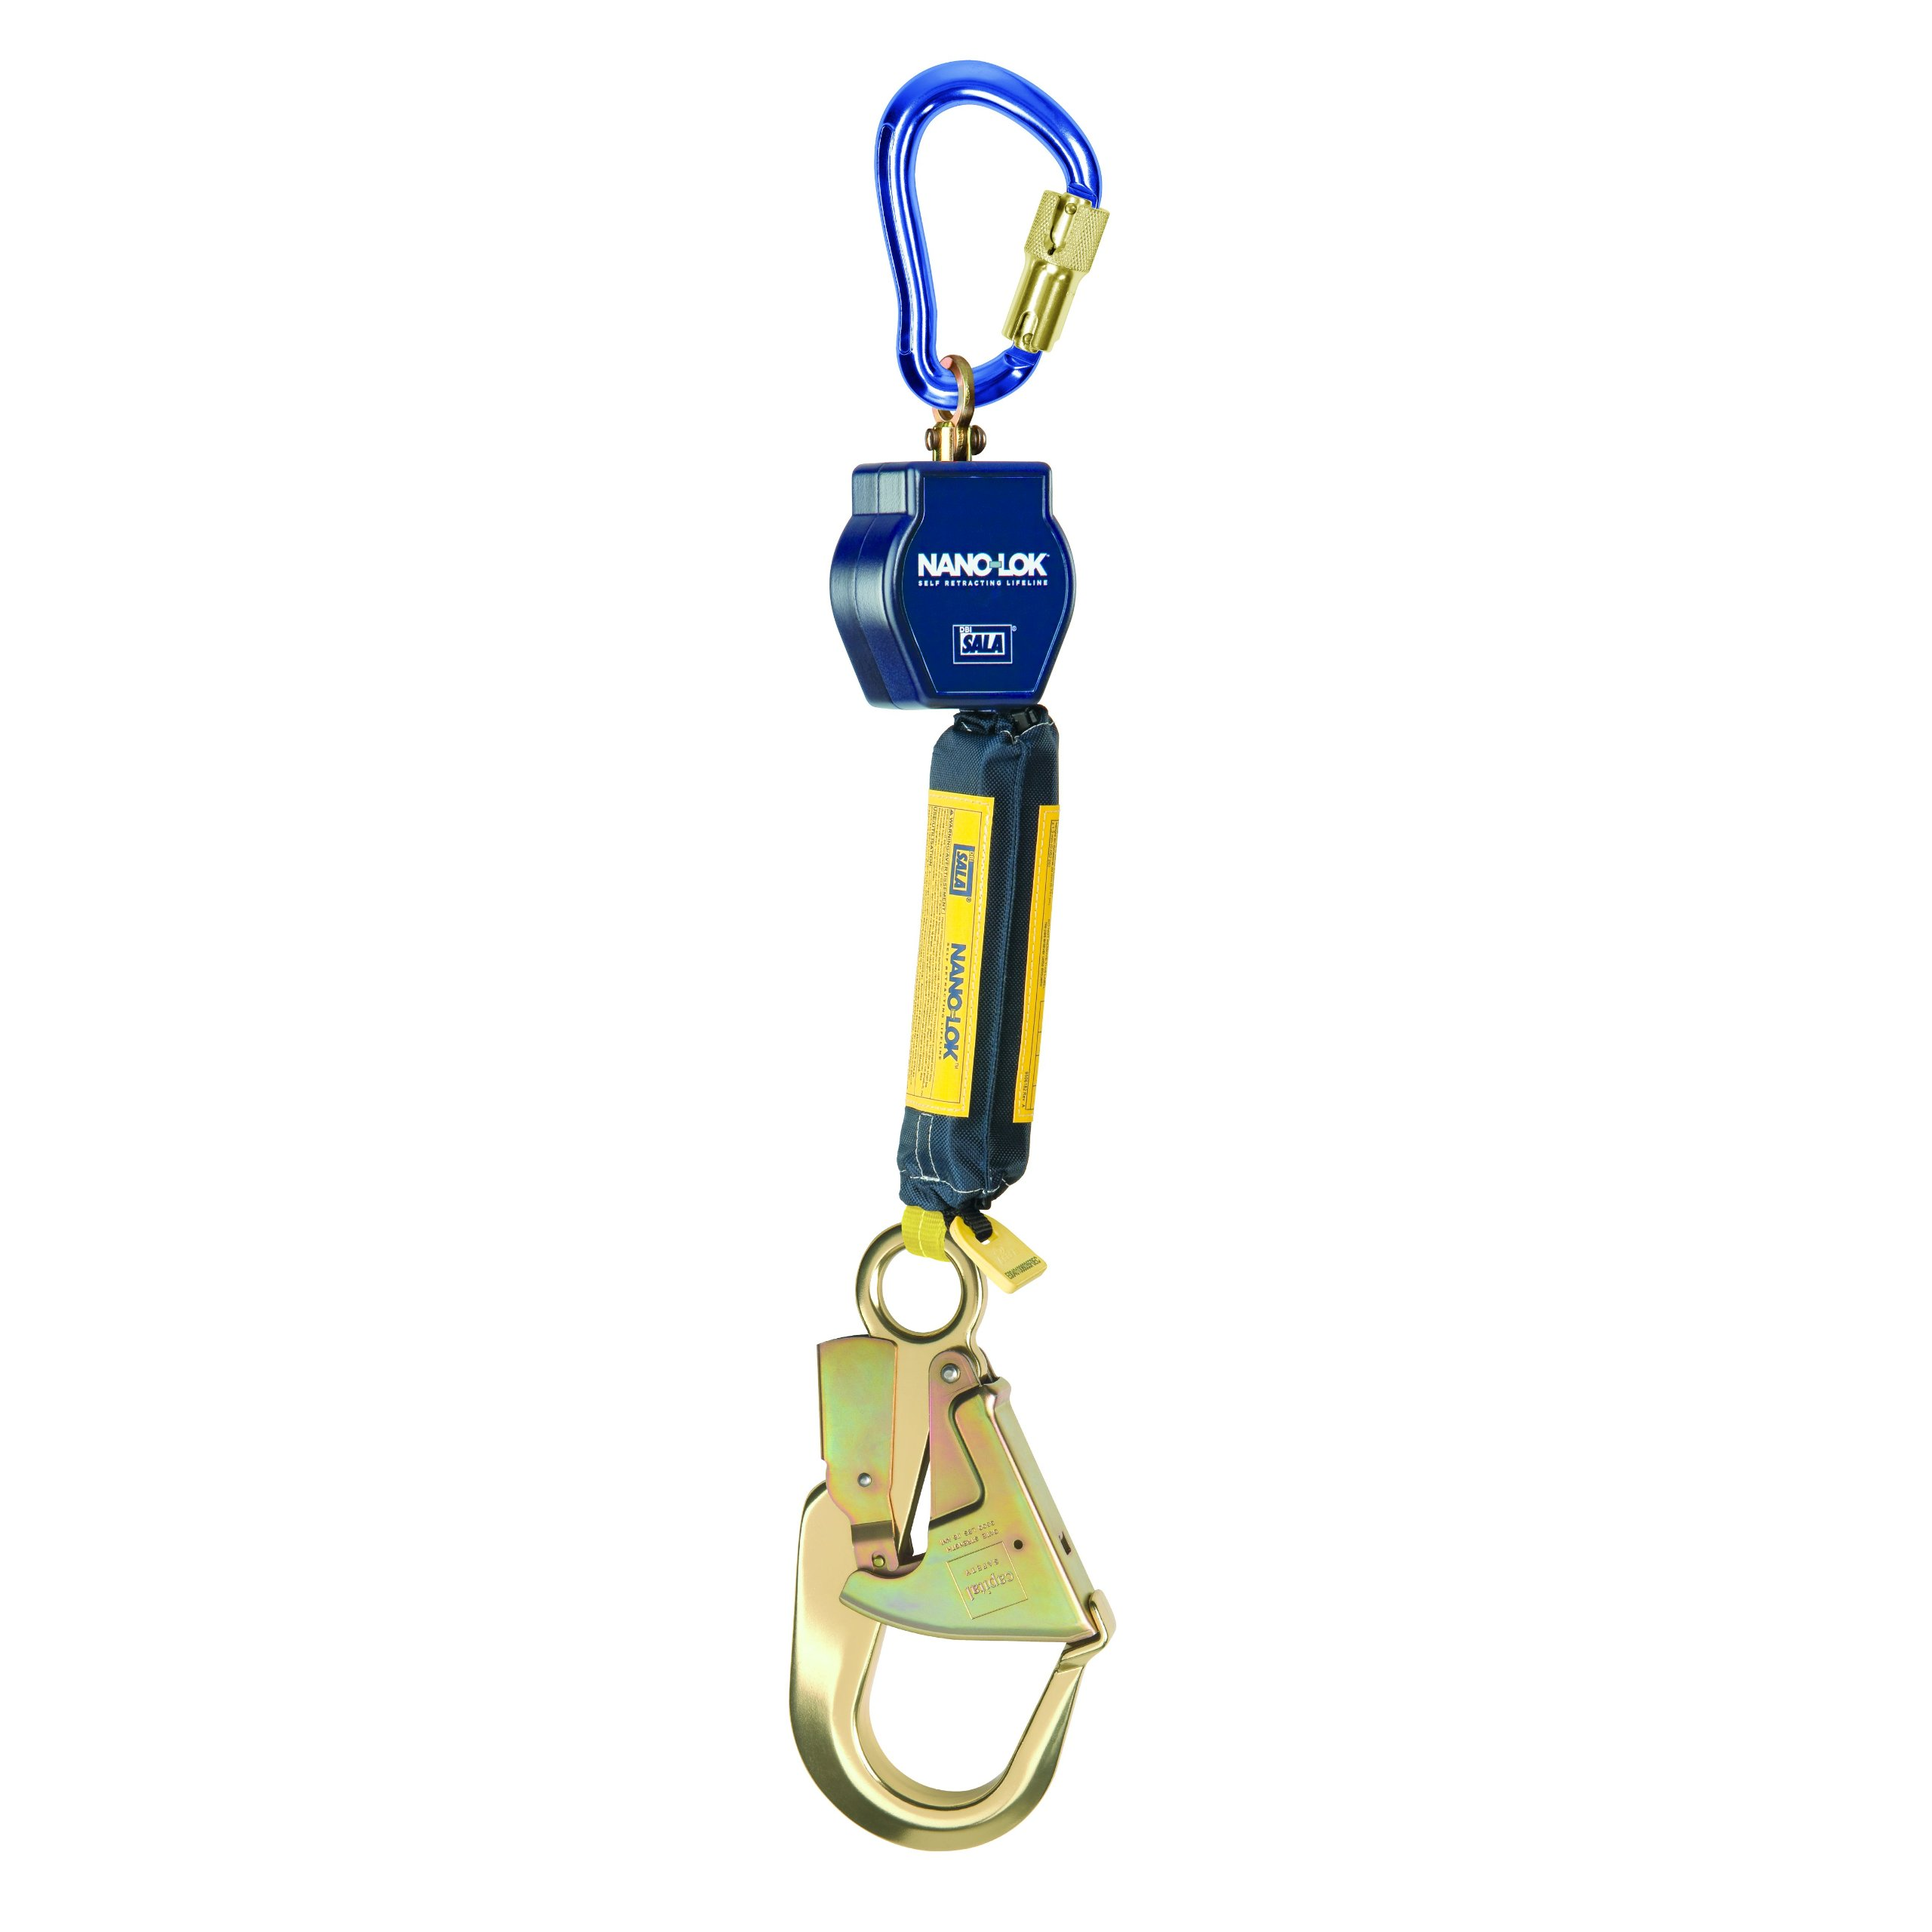 3M DBI-SALA Retrax 1241480 Shock Absorbing Lanyard, 6' 100 Percent Tie-Off Retractable Web and Snap Hooks At Each End, Navy/Yellow